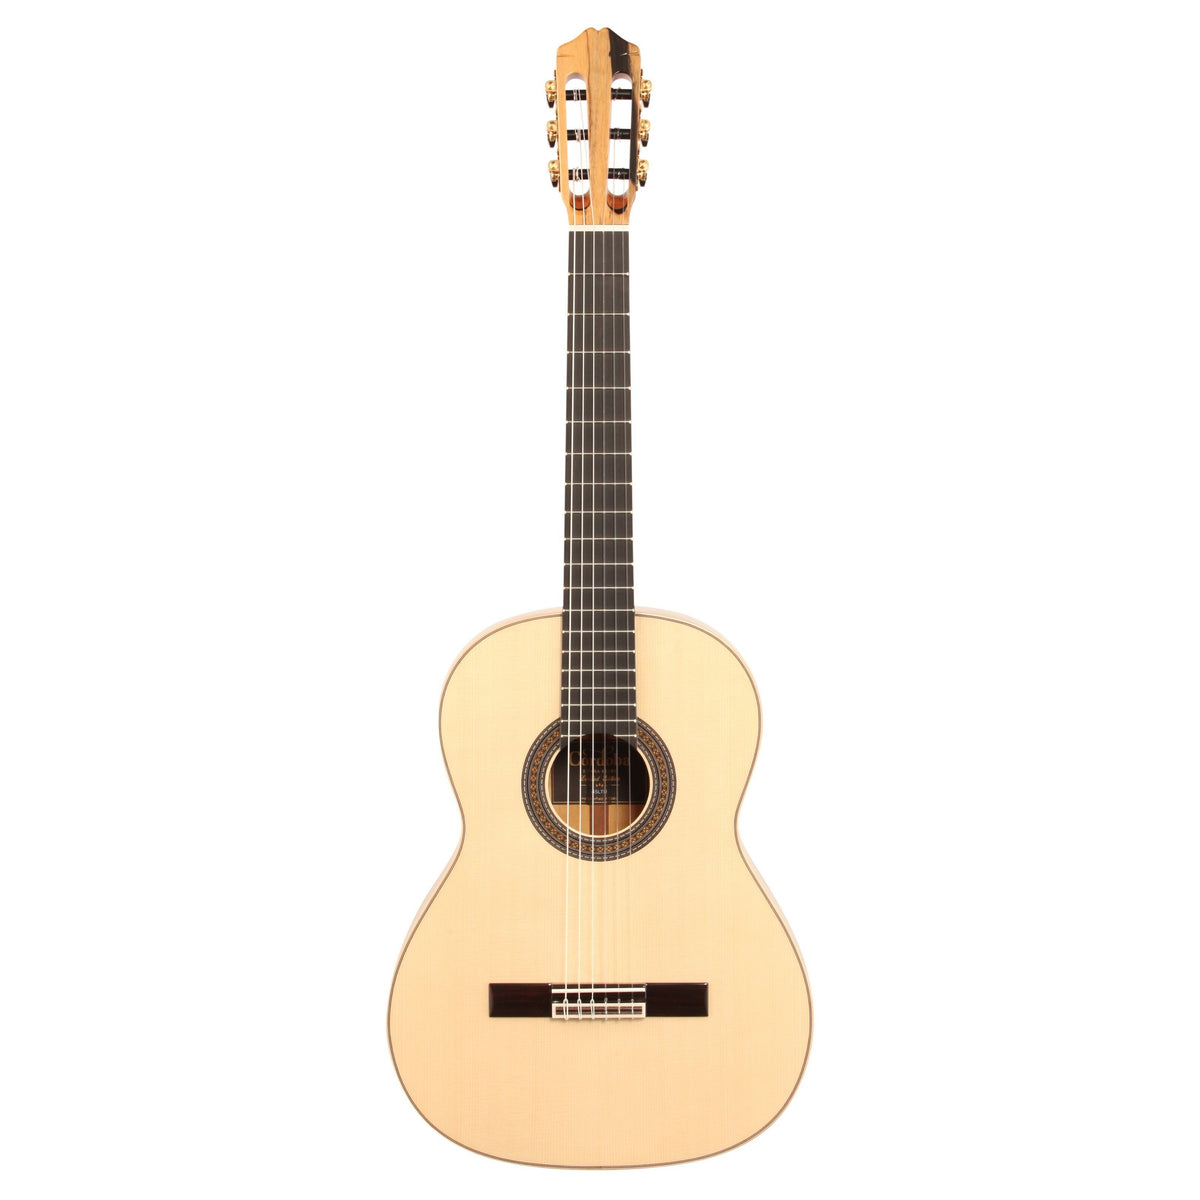 Cordoba 45 Limited Classical Acoustic Guitar (with Case)